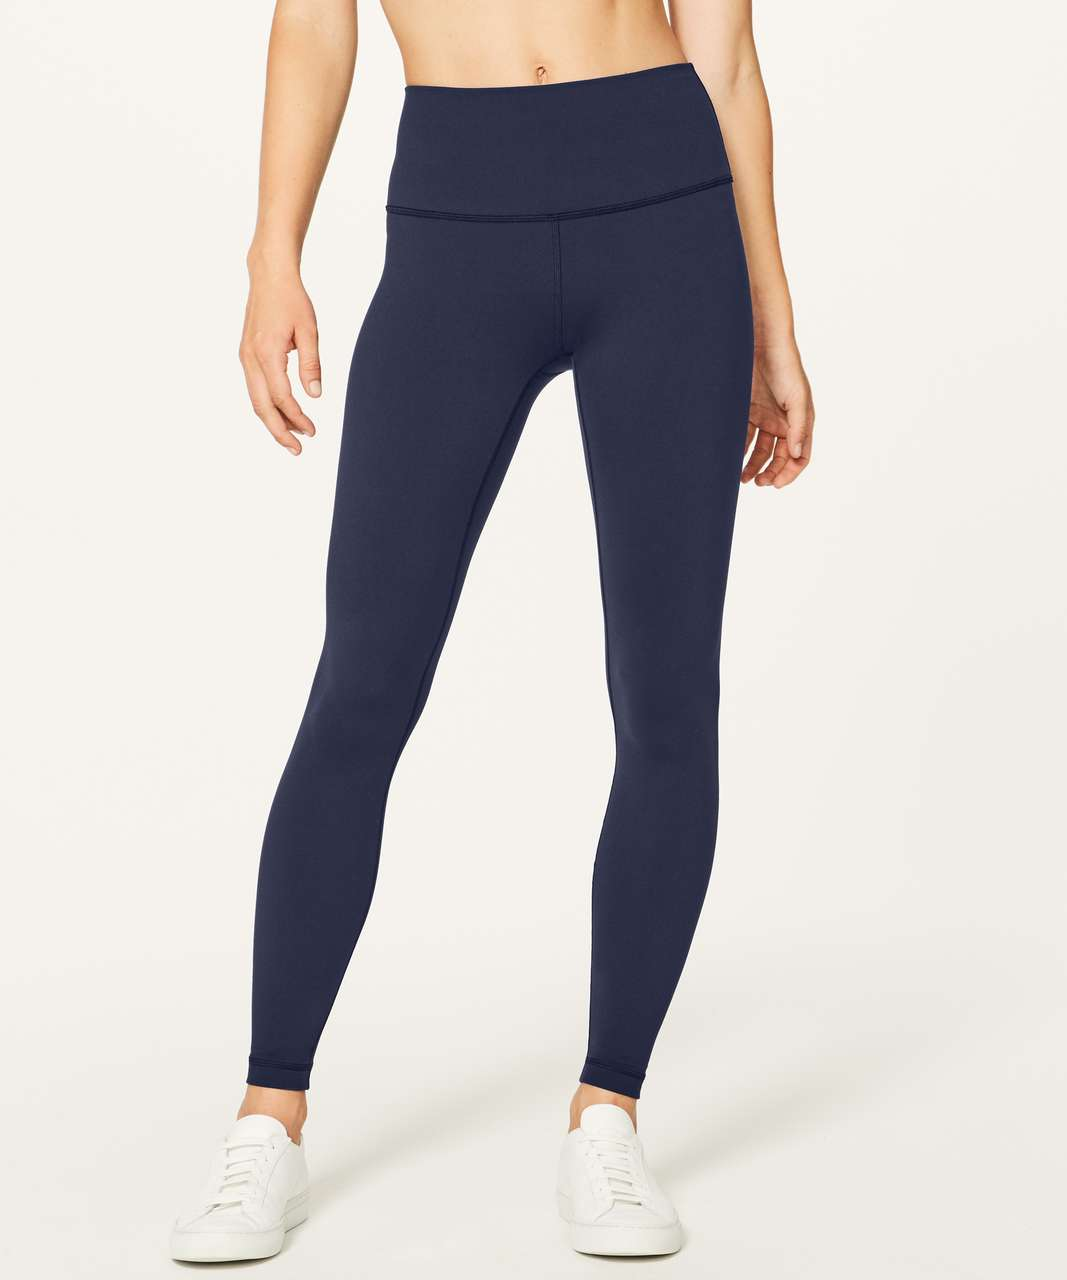 "Lululemon Wunder Under Hi-Rise Tight (Full-On Luon 28"") - Midnight Navy"